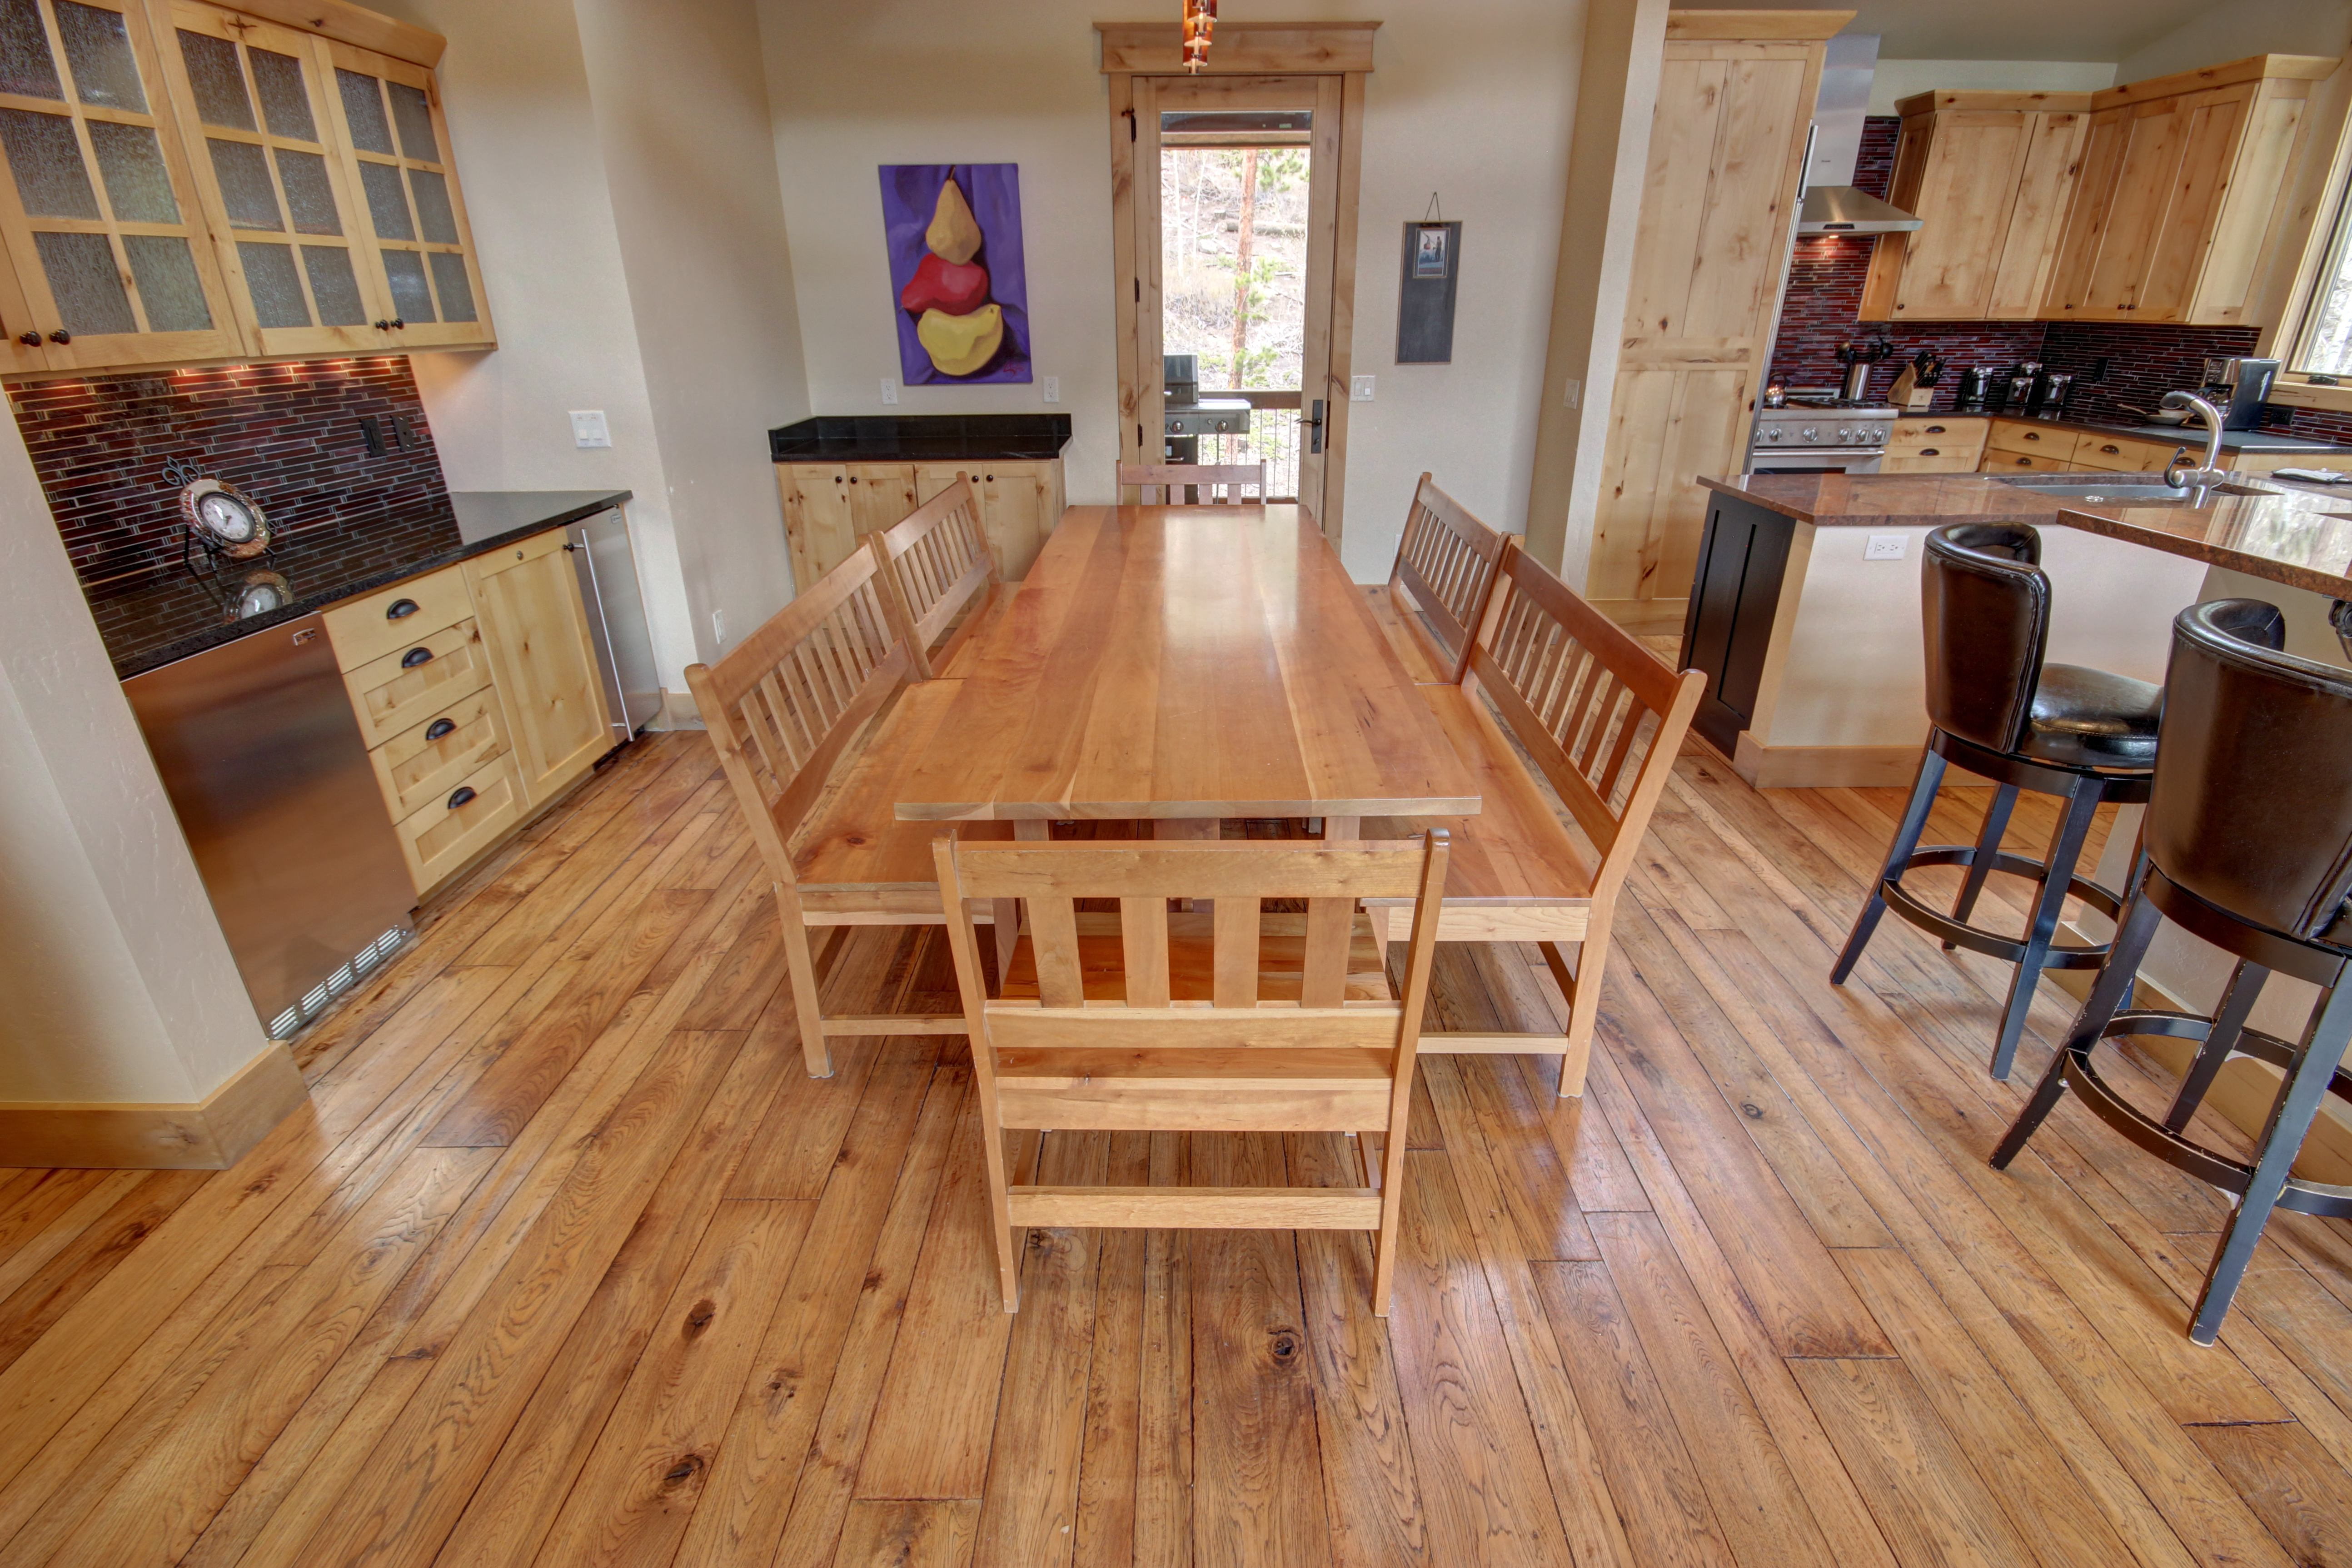 Beautiful dining area with wooden table